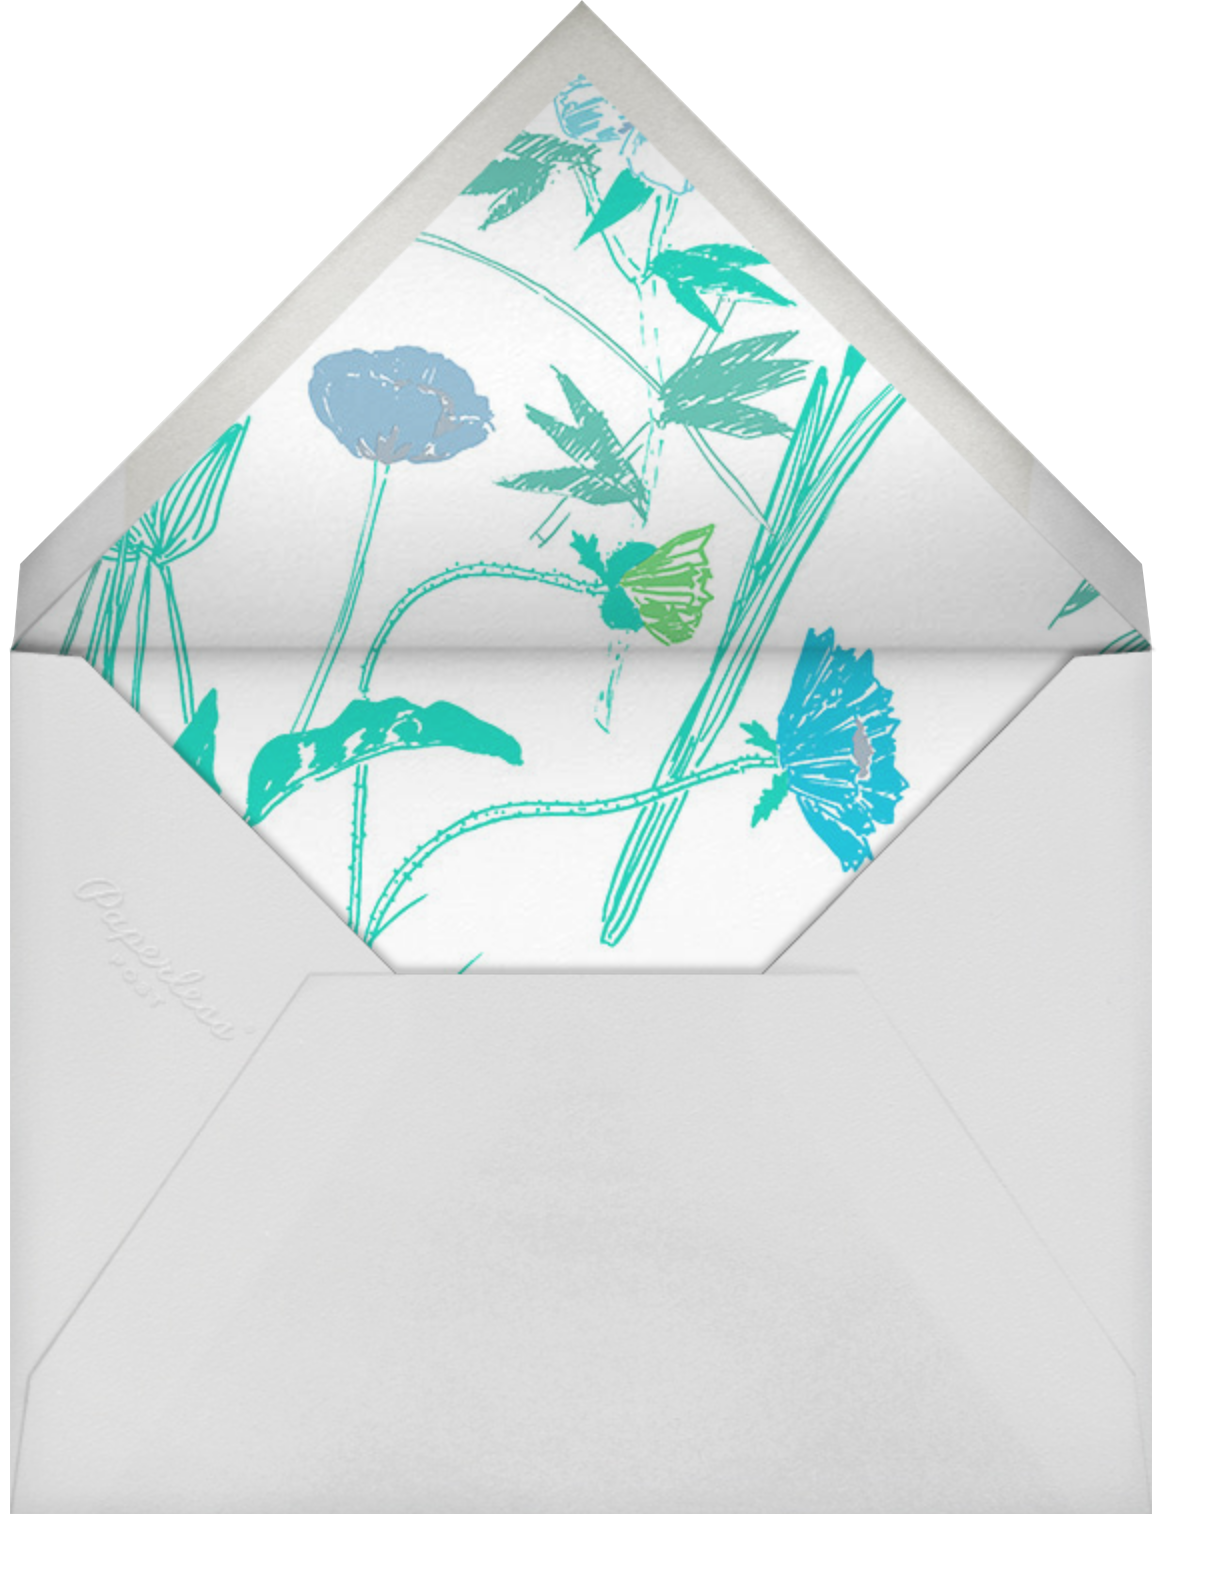 Puutarhakutsut (Tall) - Blue - Marimekko - Baby shower - envelope back